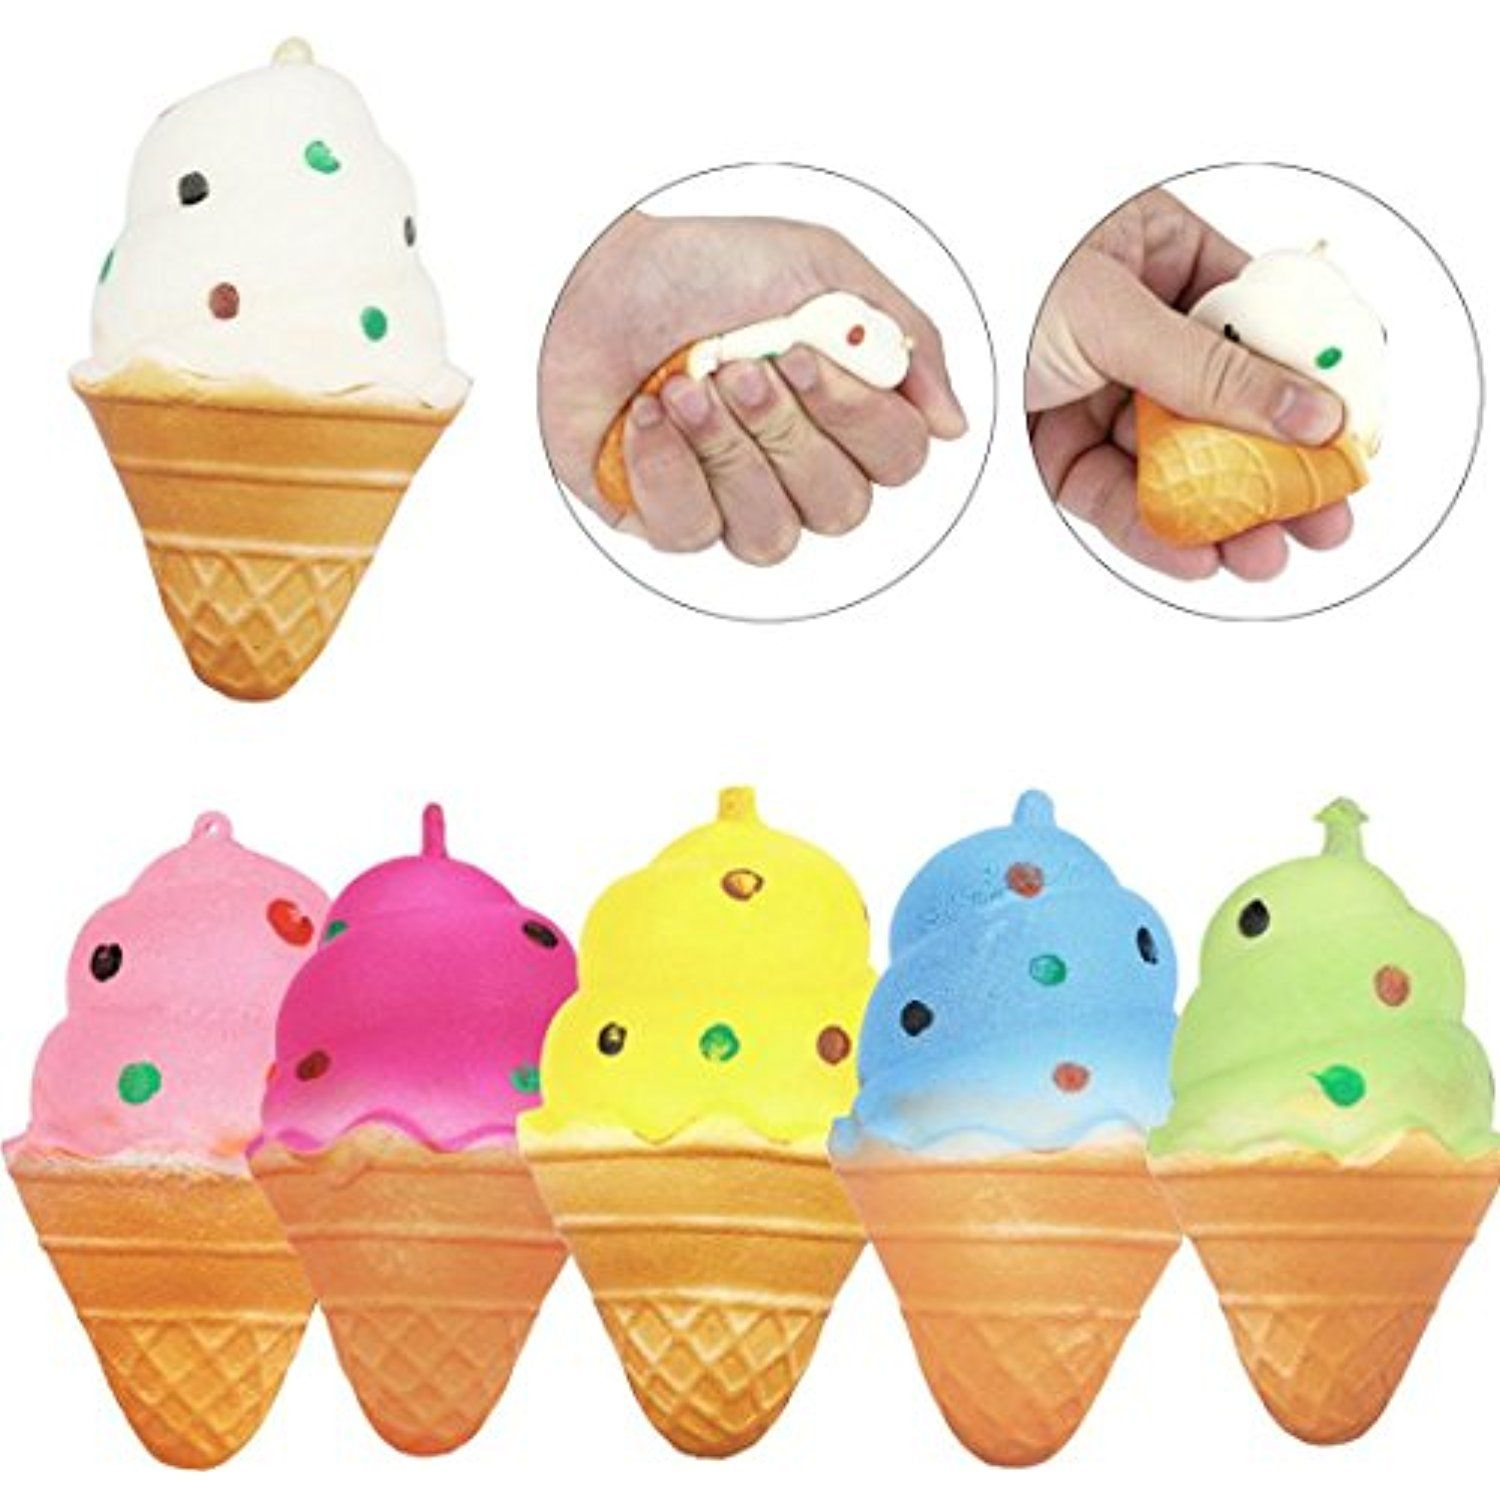 Kids Toy Dressin Ice Cream Squeeze Healing Relief Toys For you